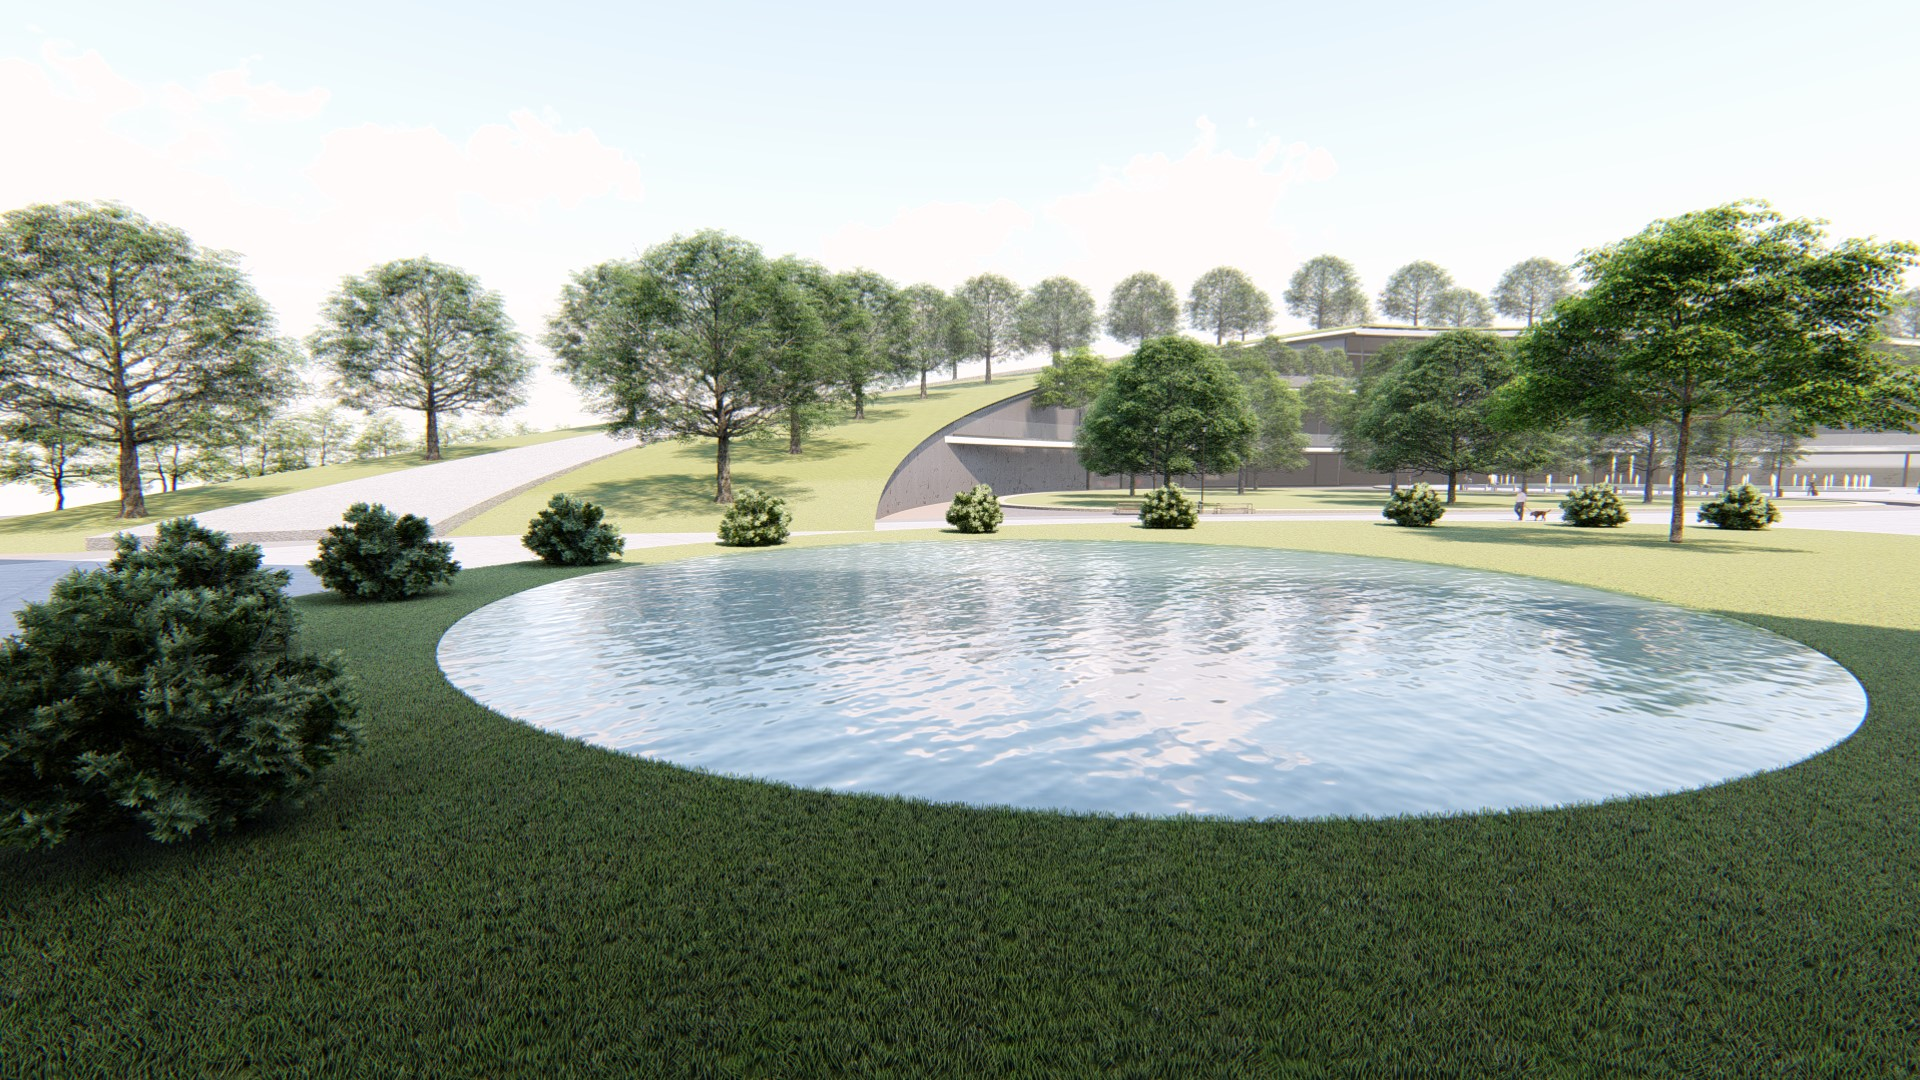 View of the pond amidst the green space.